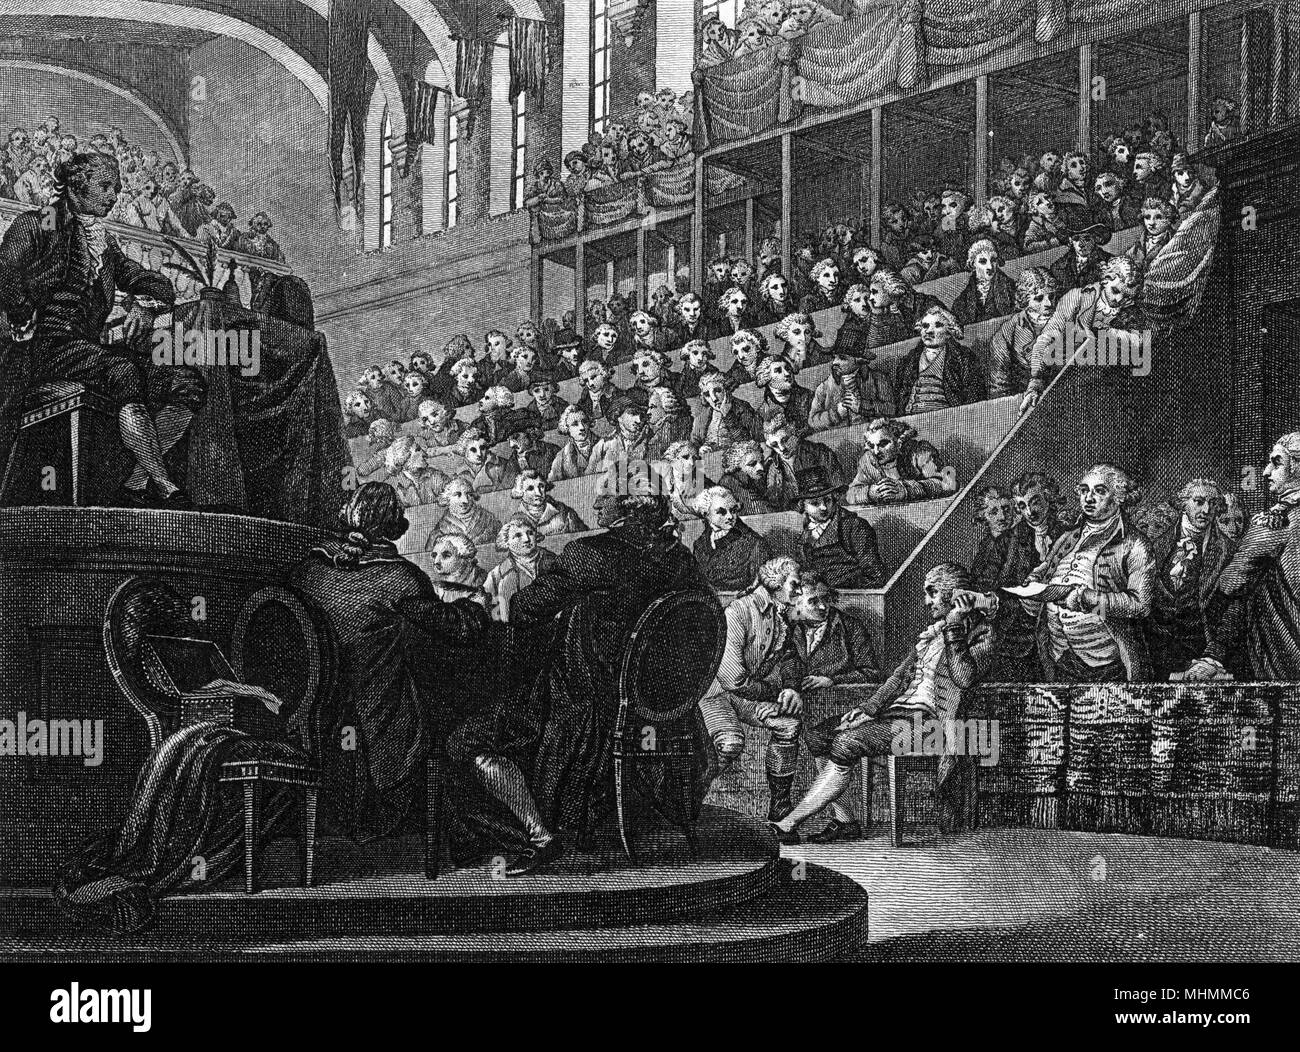 Louis XVI - known as citoyen Louis Capet - appears before the Convention Nationale to hear the charges brought against him. He will be found guilty and condemned to die.     Date: 25 December 1792 - Stock Image